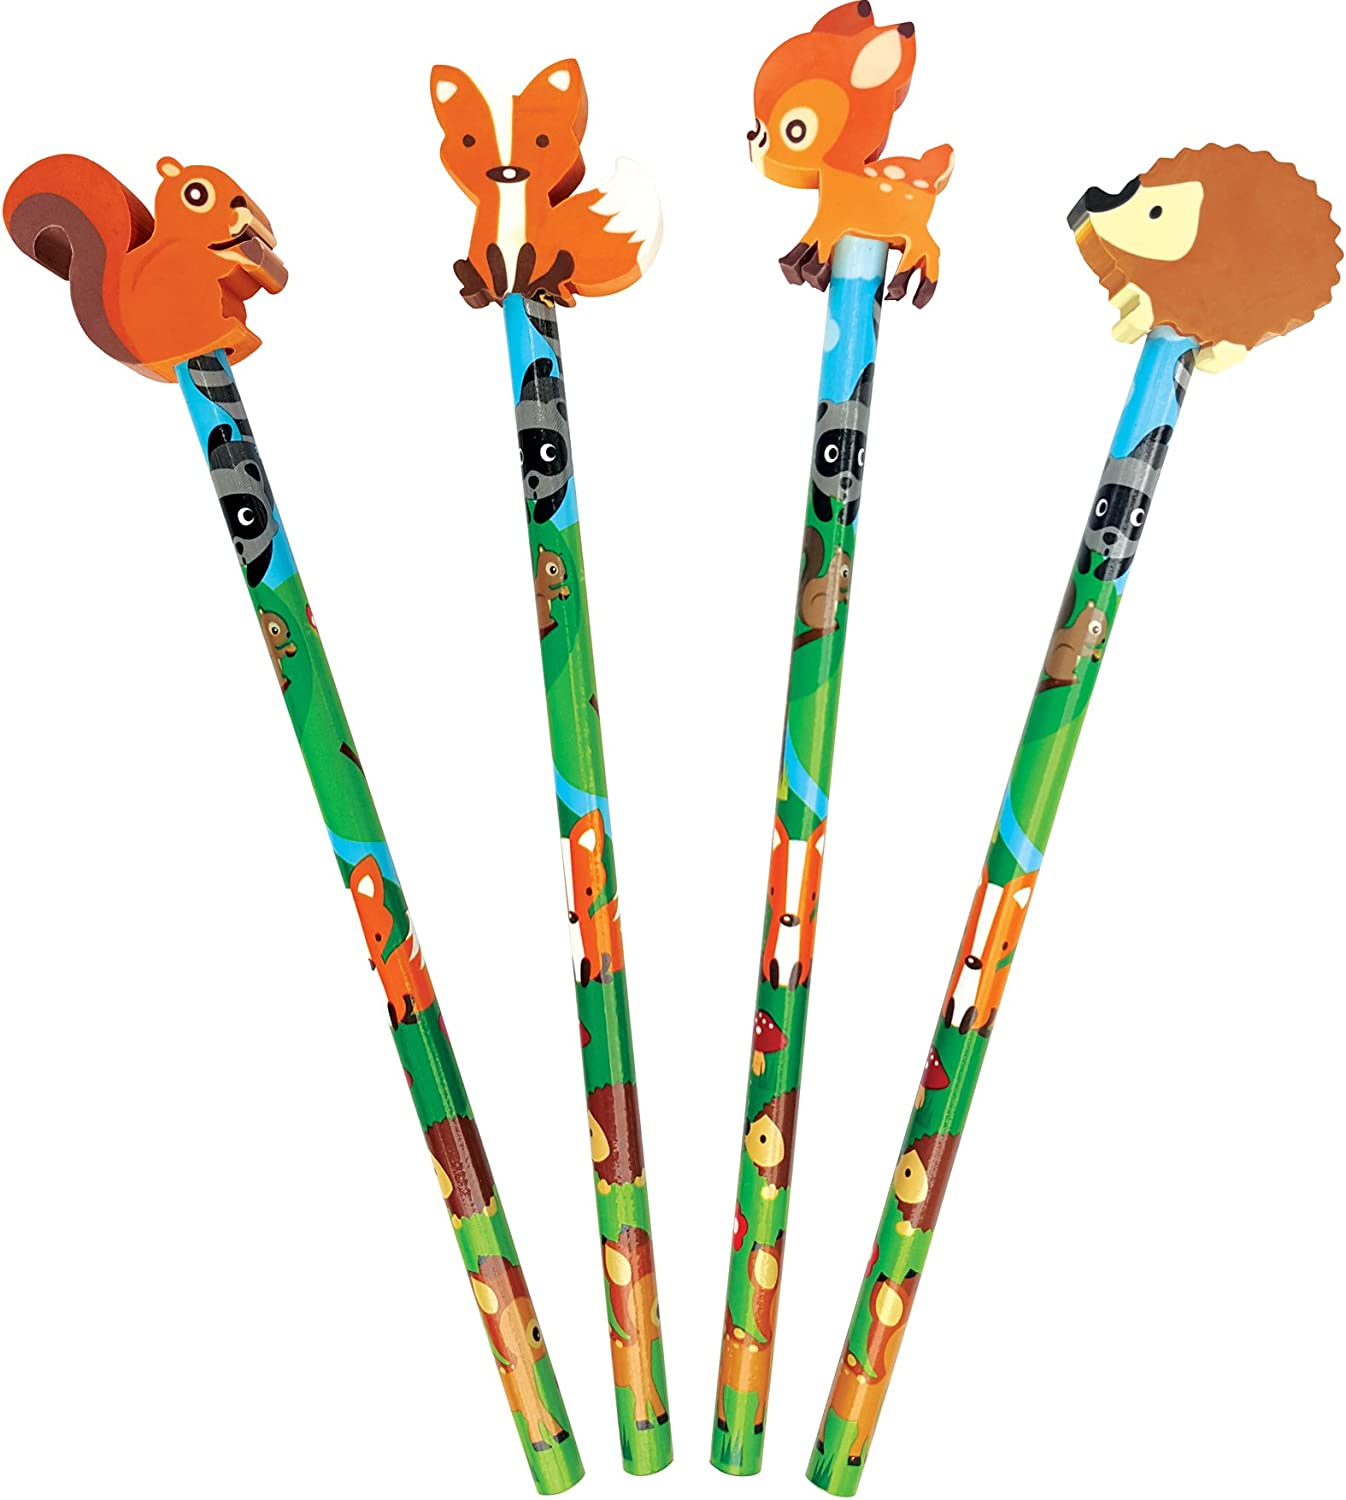 The Piggy Story Fox /& Woodland Animals Set of 4 Pencils with Die-Cut Eraser Toppers